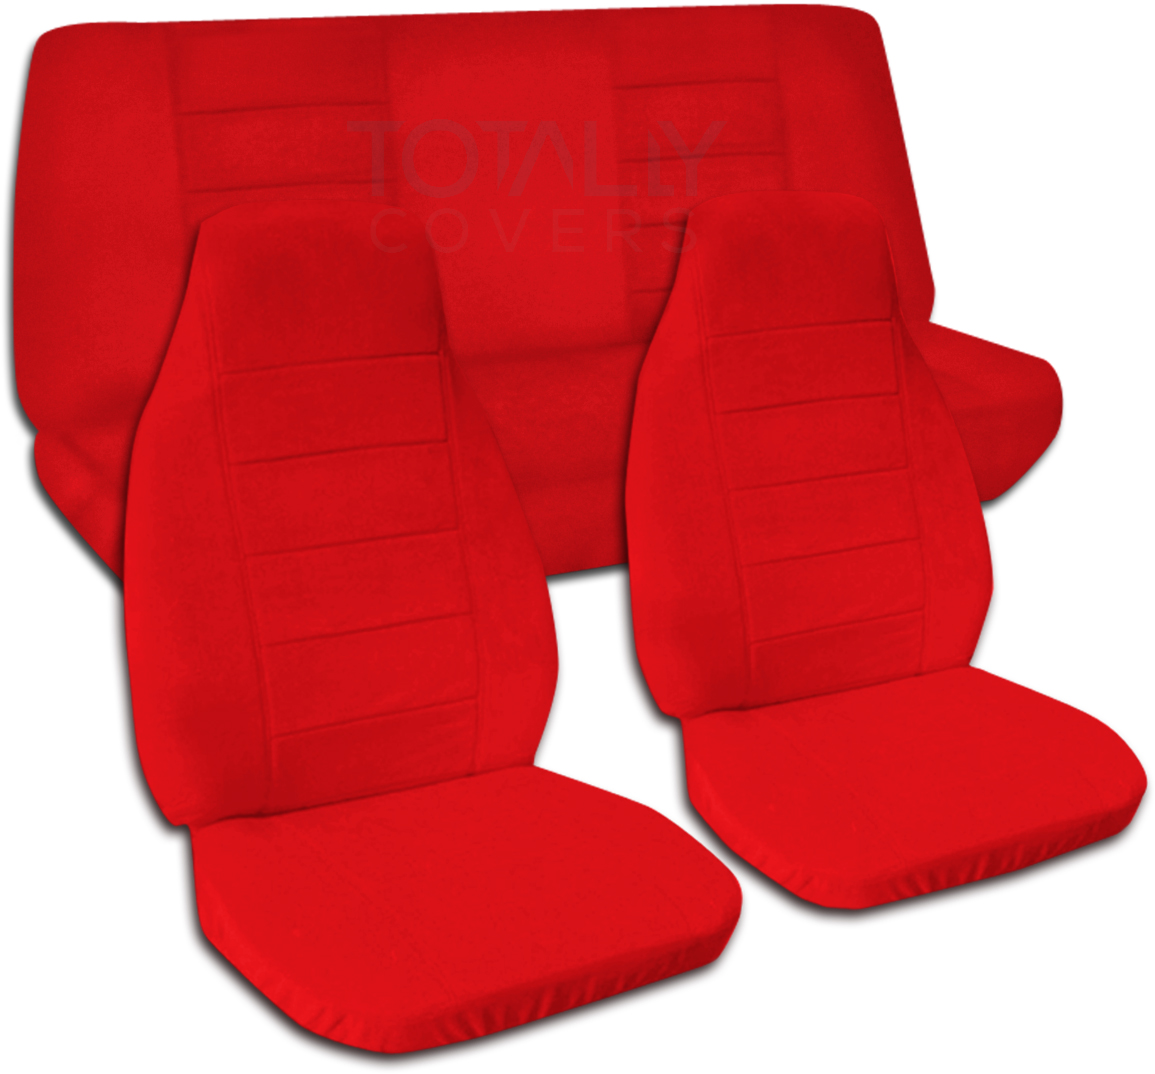 Car Seat Covers Color For Burgundy Car